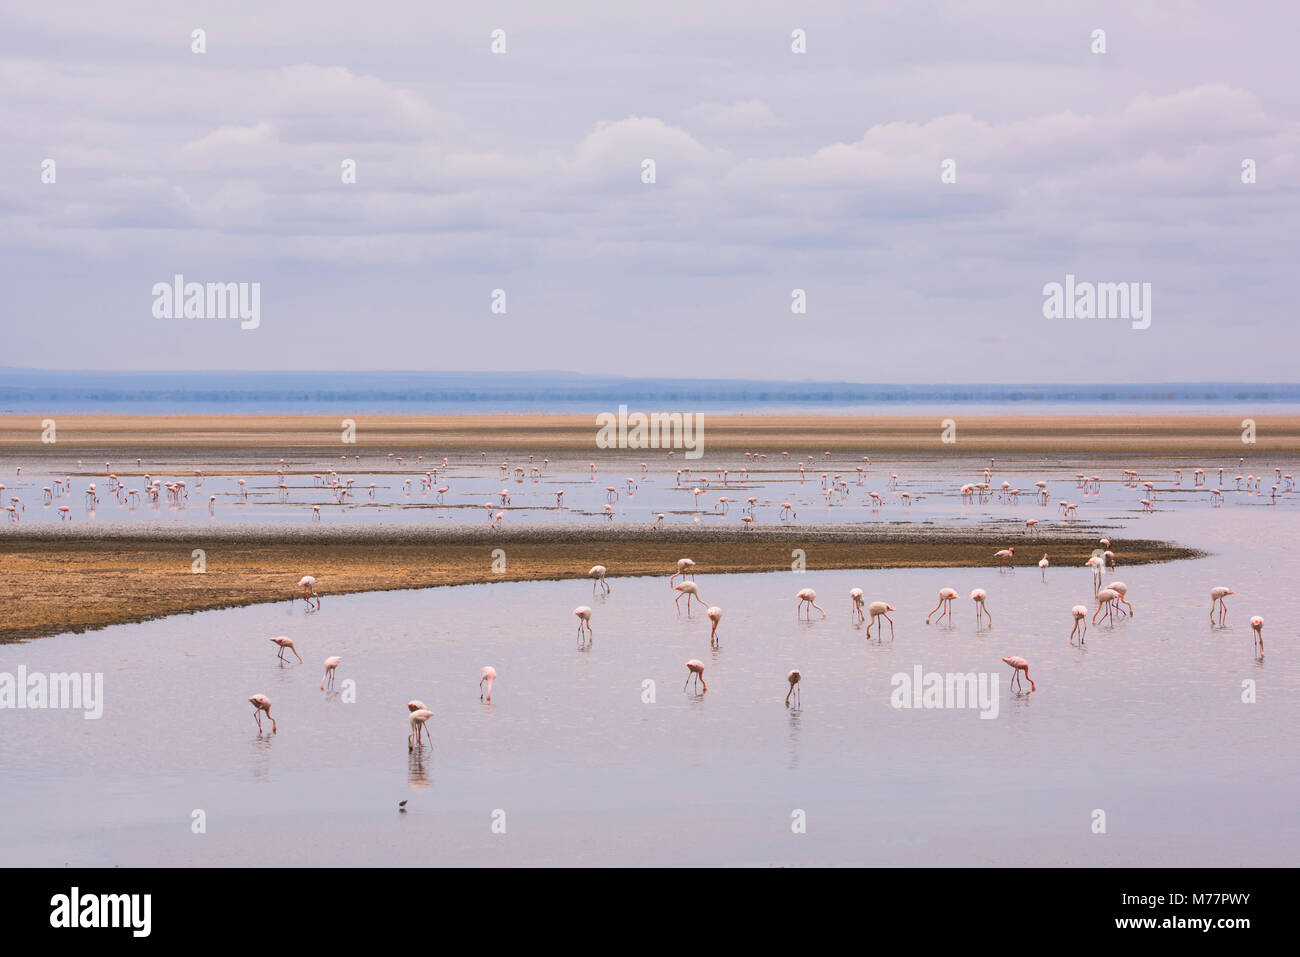 Flamingos on Lake Manyara in Lake Manyara National Park, Tanzania, East Africa, Africa - Stock Image